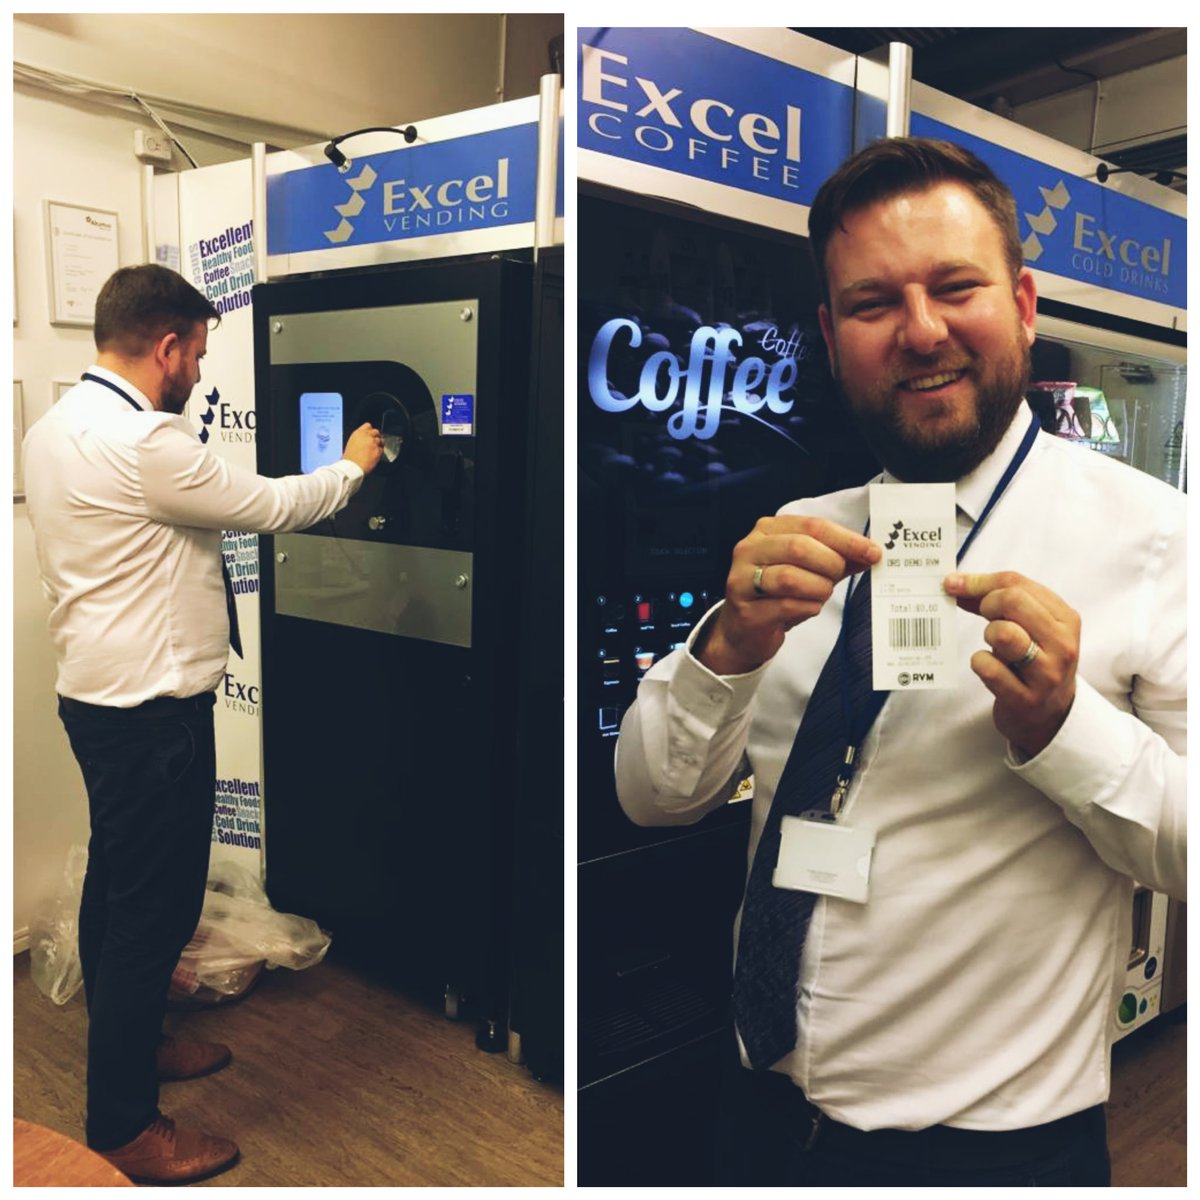 Great day today catching up with our friends at @ExcelVendingLtd, even got to use their fanatsic #ReverseVending machines!  @cfcnath @JoVB https://t.co/YlXNyVqy2j